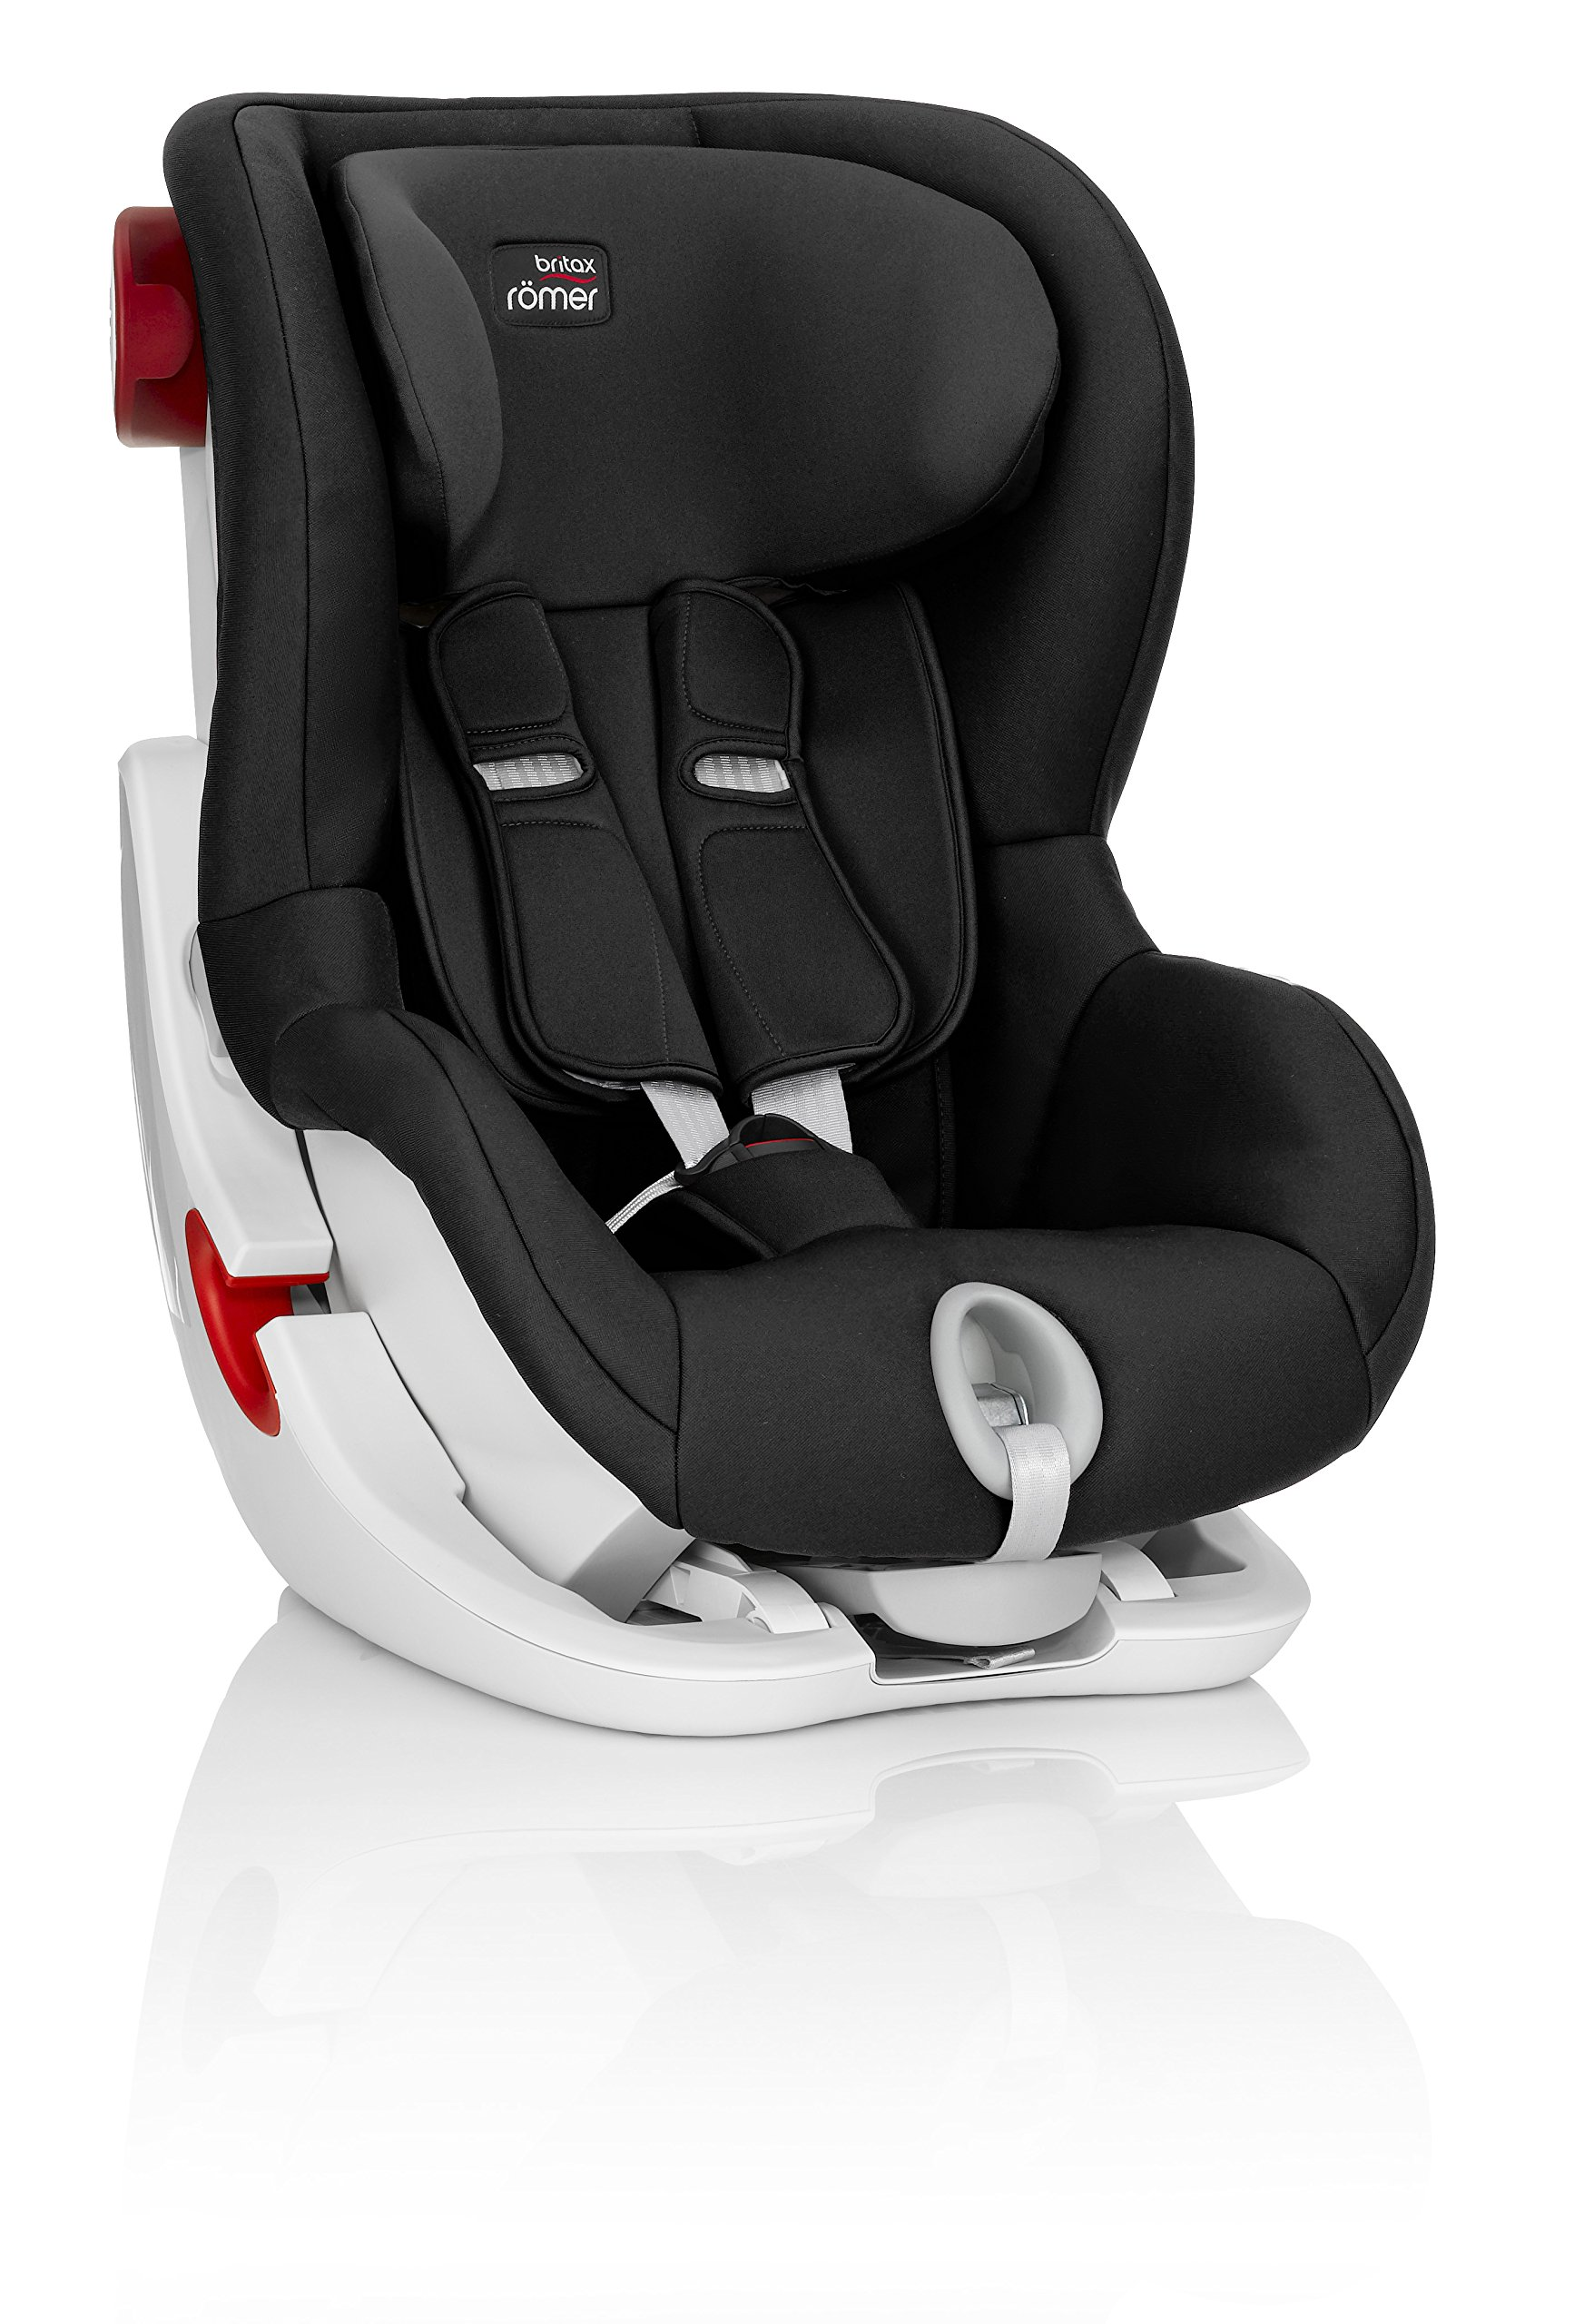 Britax Römer KING II Group 1 (9-18kg) Car Seat - Cosmos Black Britax Römer Easy installation - with tilting seat and patented seat belt tensioning system Optimum protection - performance chest pads, deep, padded side 4